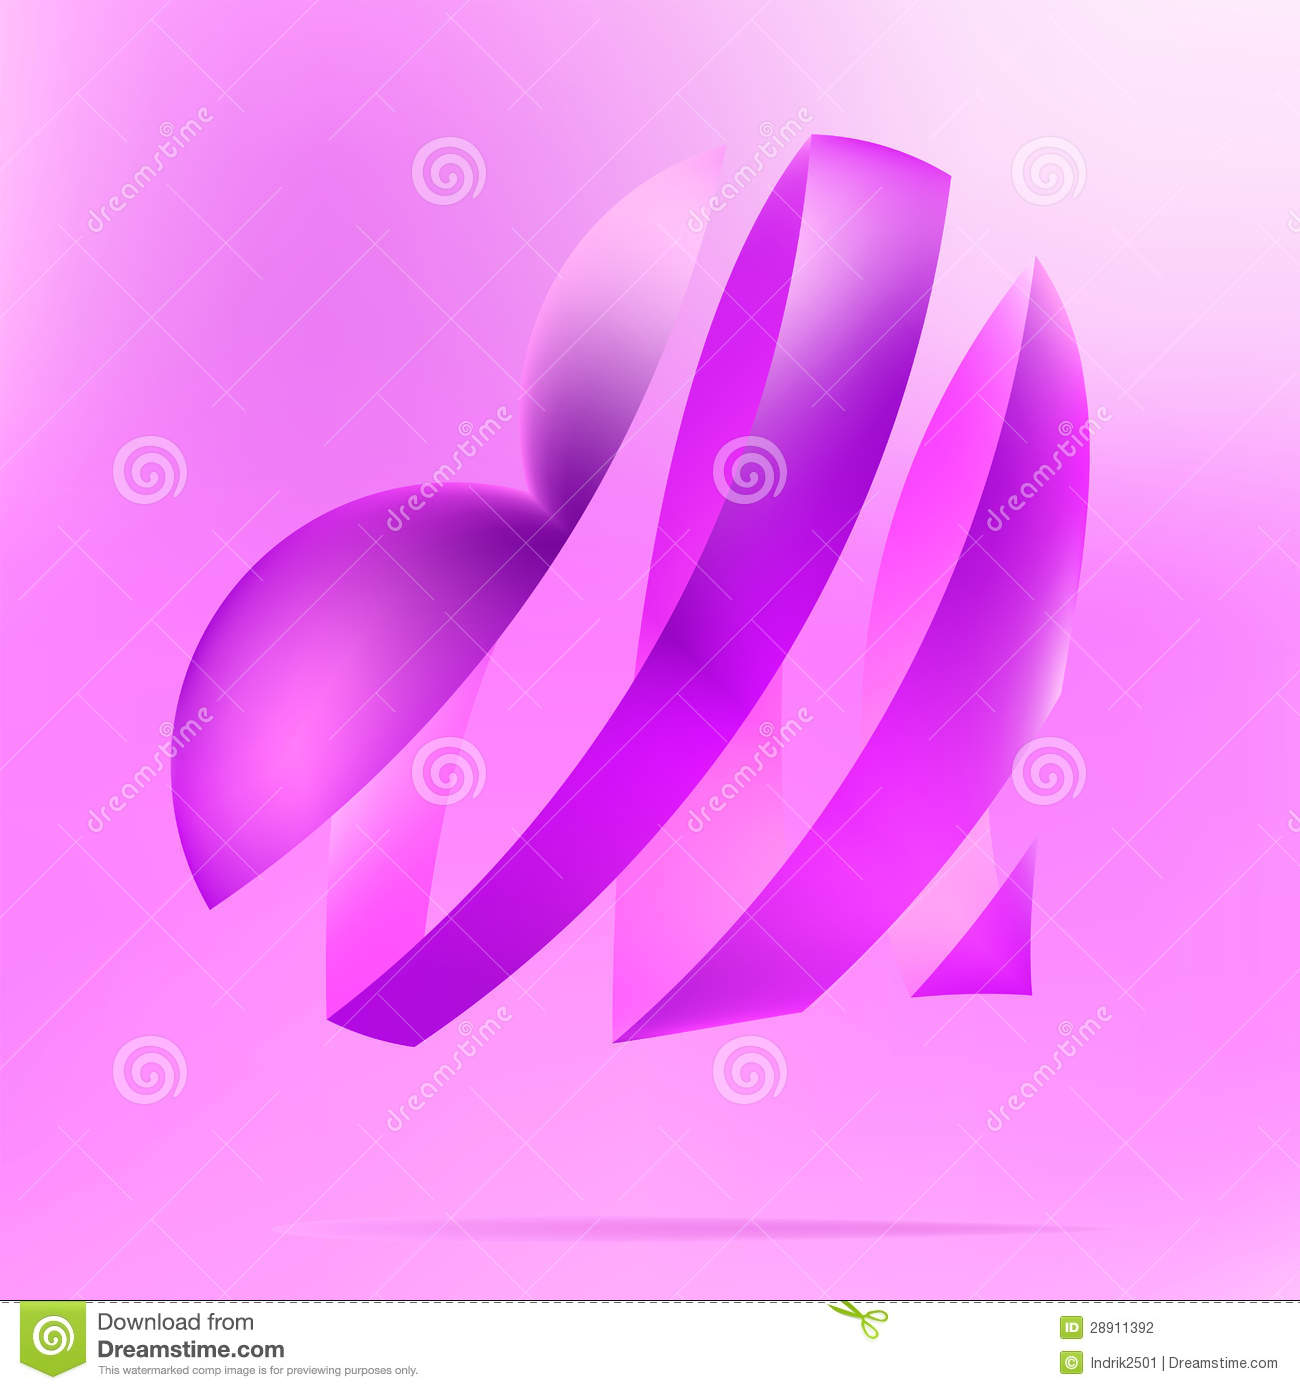 Image Gallery light purple heart